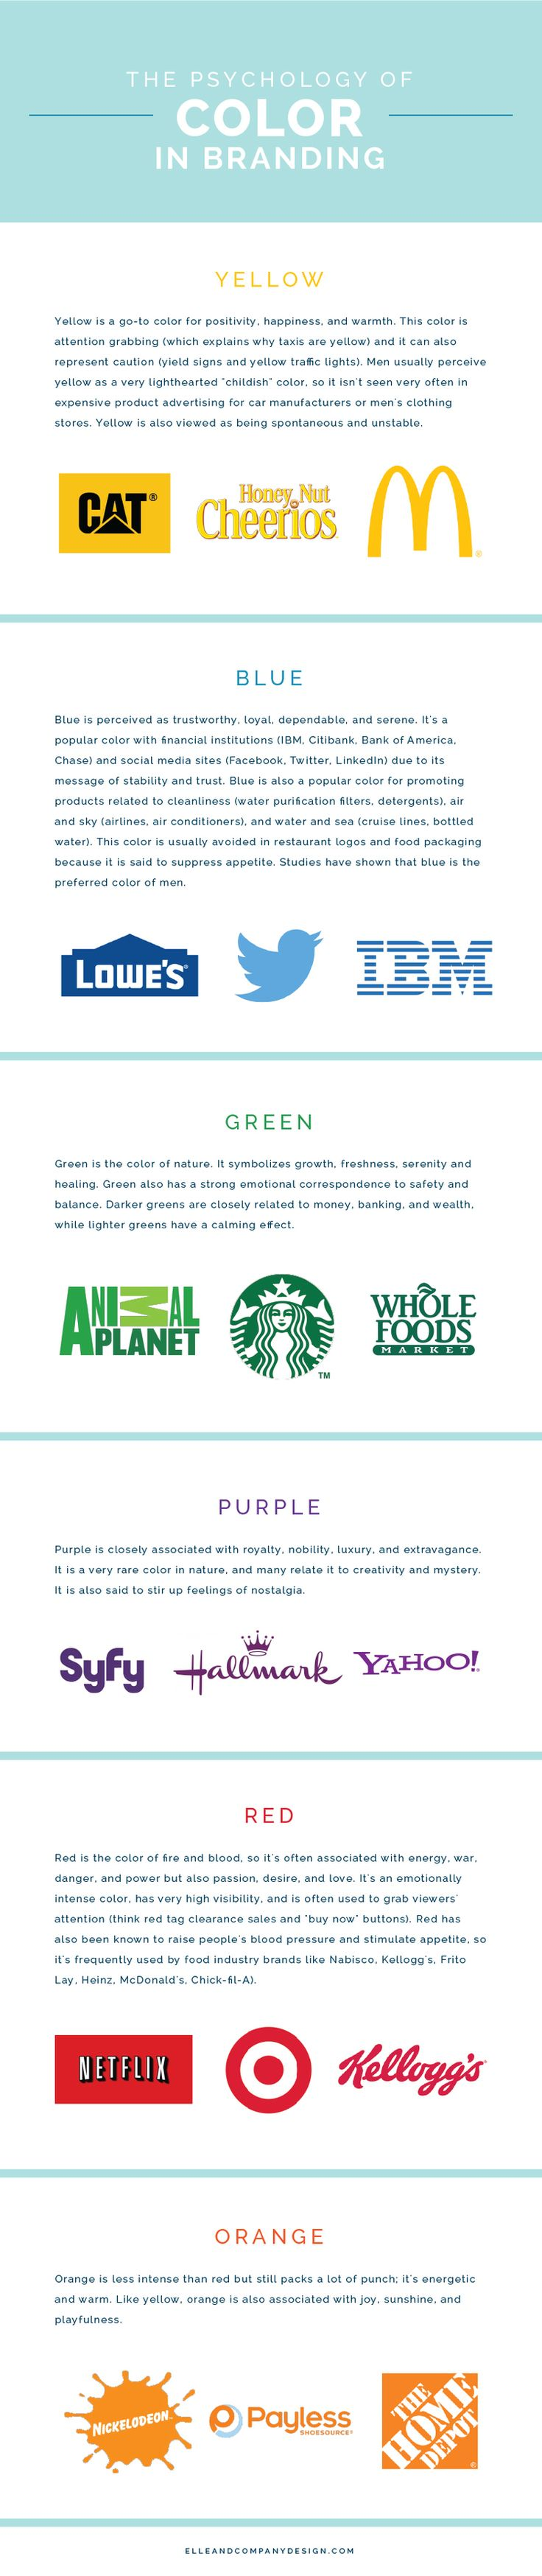 The Psychology of Color in Branding (via Bloglovin.com )